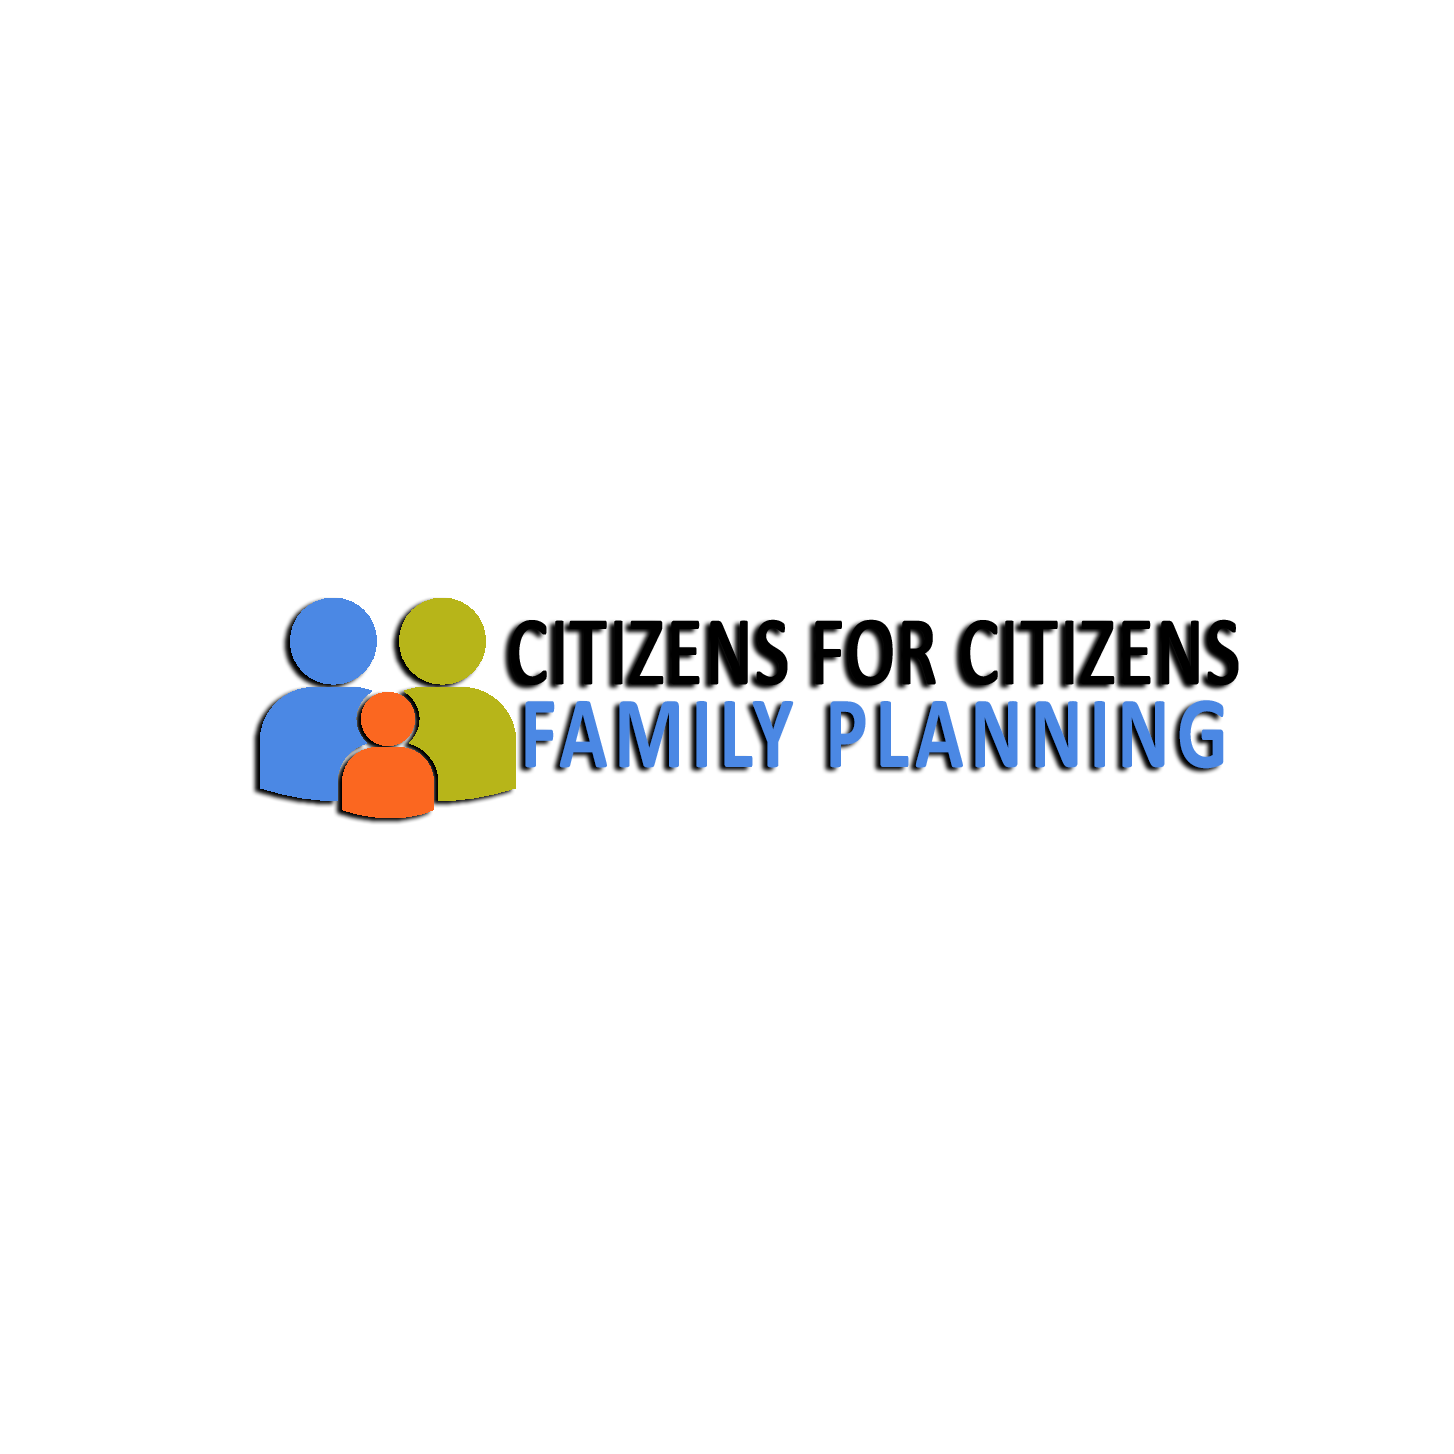 Citizens For Citizens Family Planning